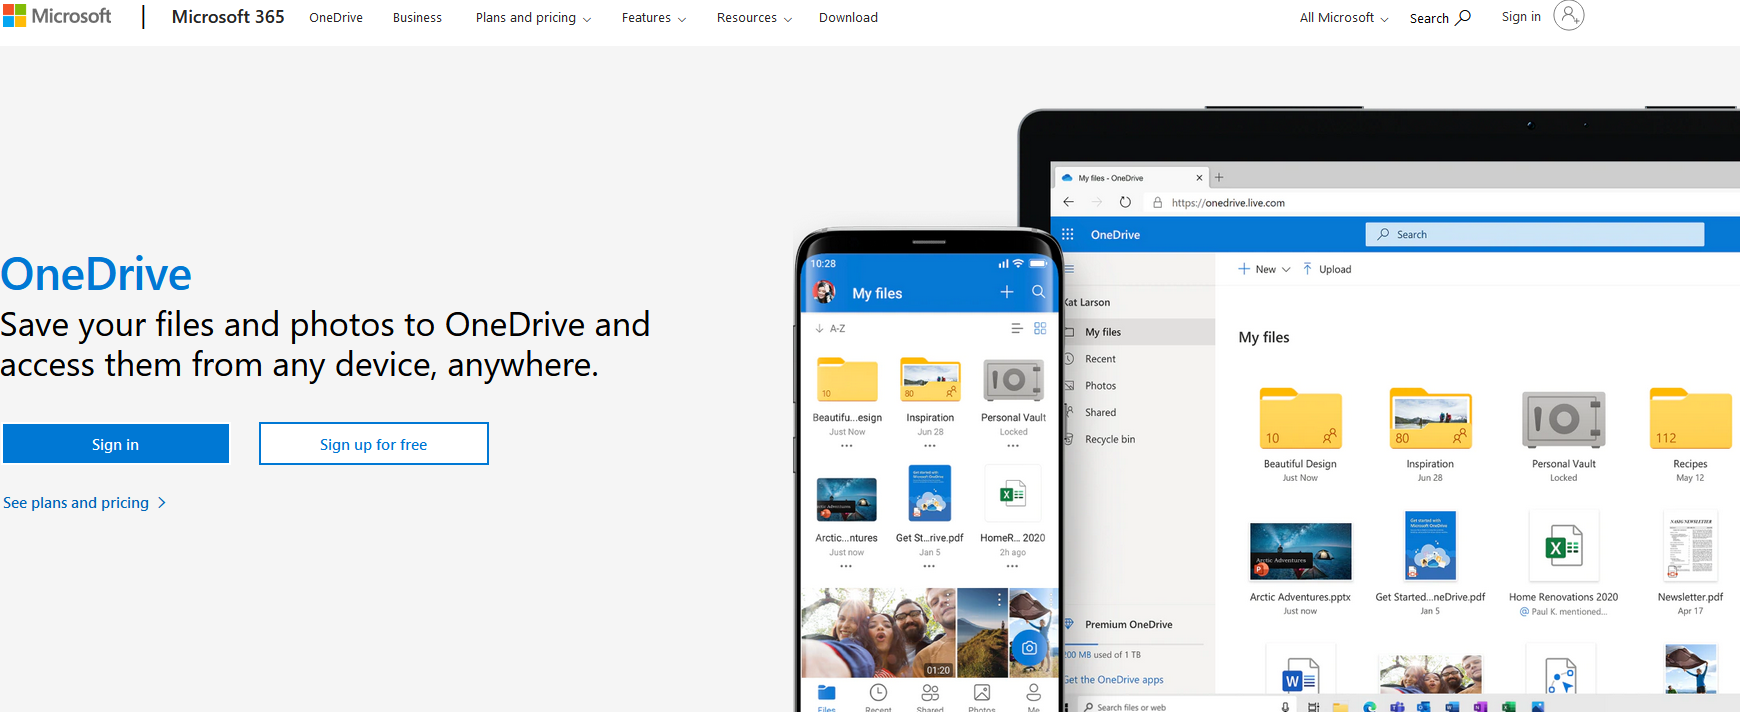 The OneDrive website.